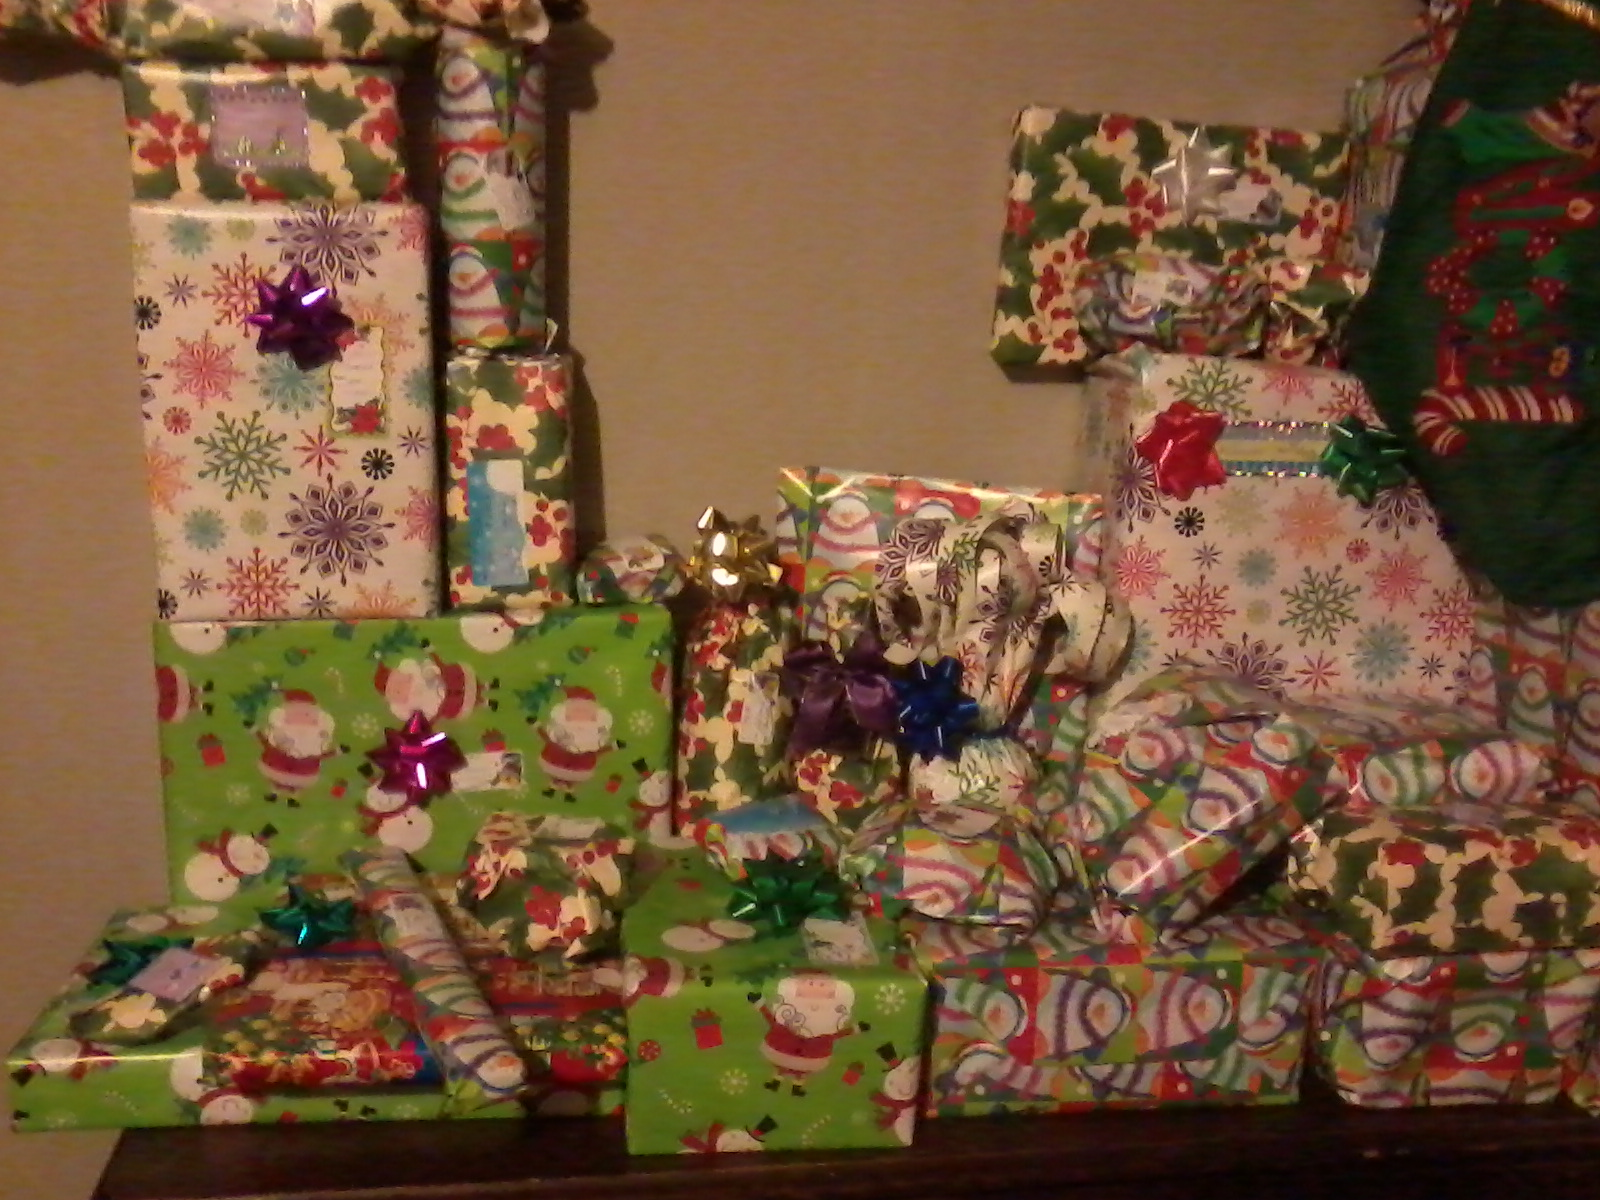 Some of the presents